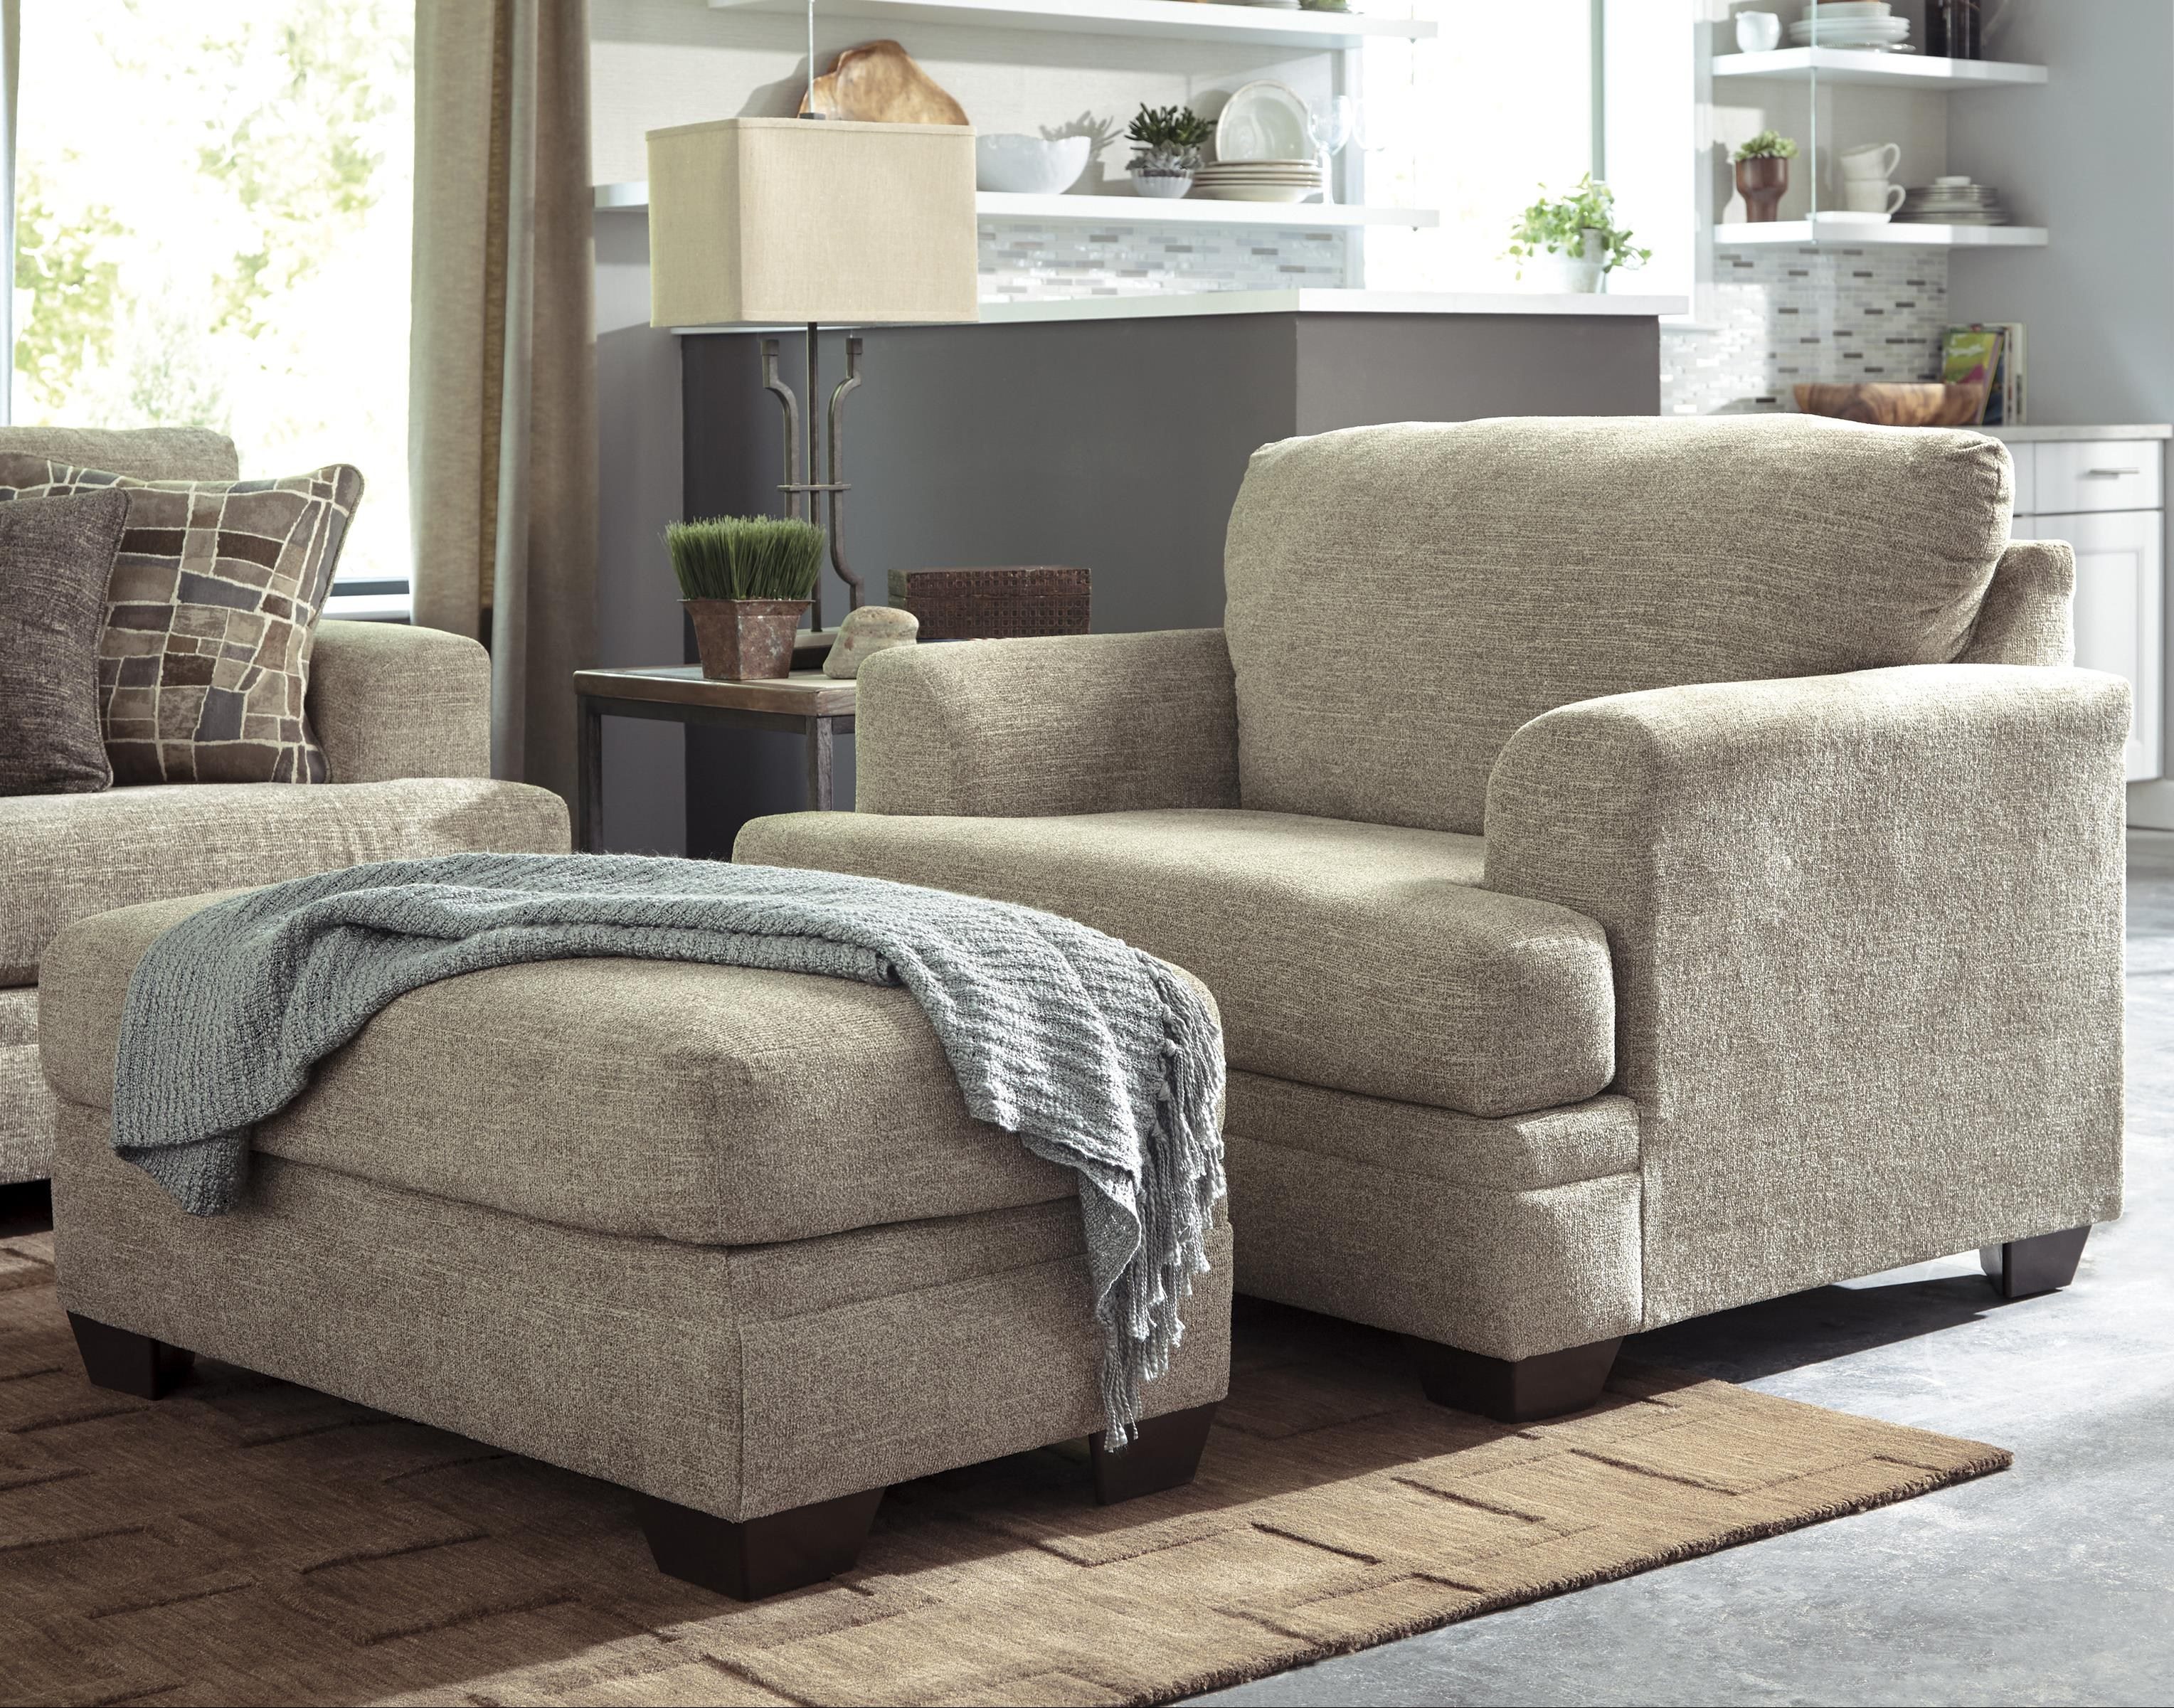 Benchcraft Barrish Contemporary Chair and a Half & Ottoman | Gallery